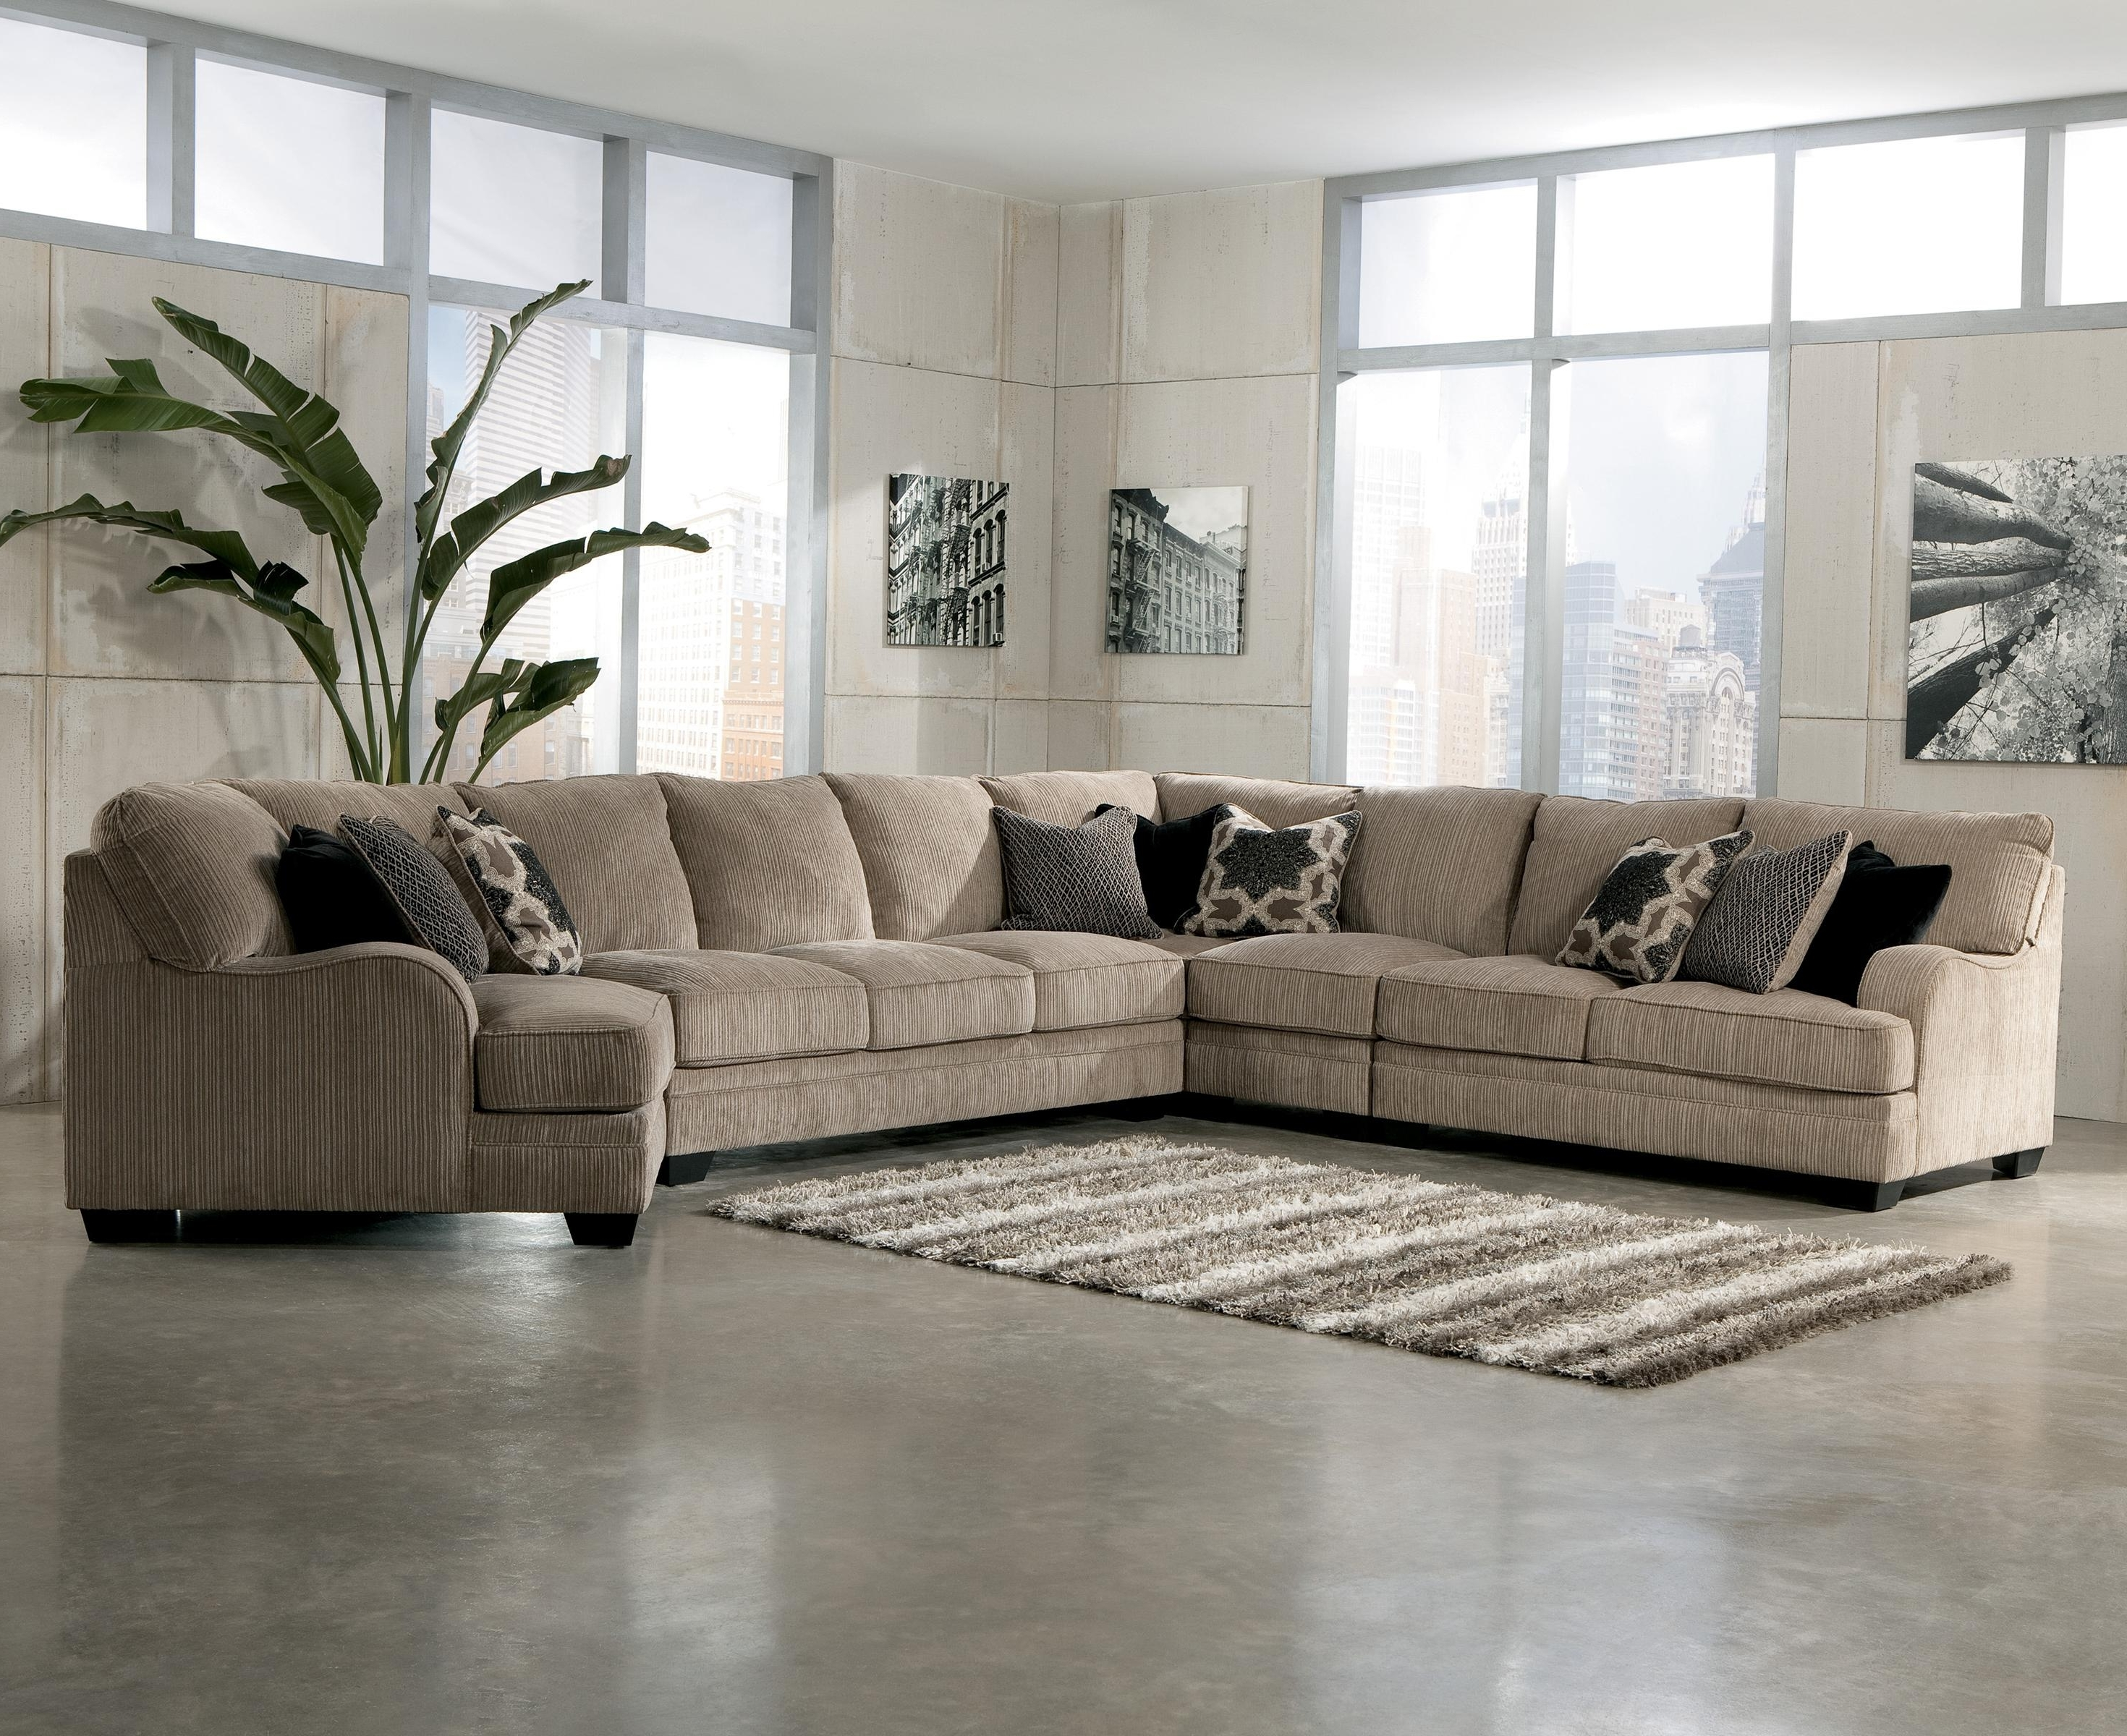 Famous Home Furniture Sectional Sofas Inside Signature Designashley Katisha – Platinum 5 Piece Sectional (View 6 of 20)